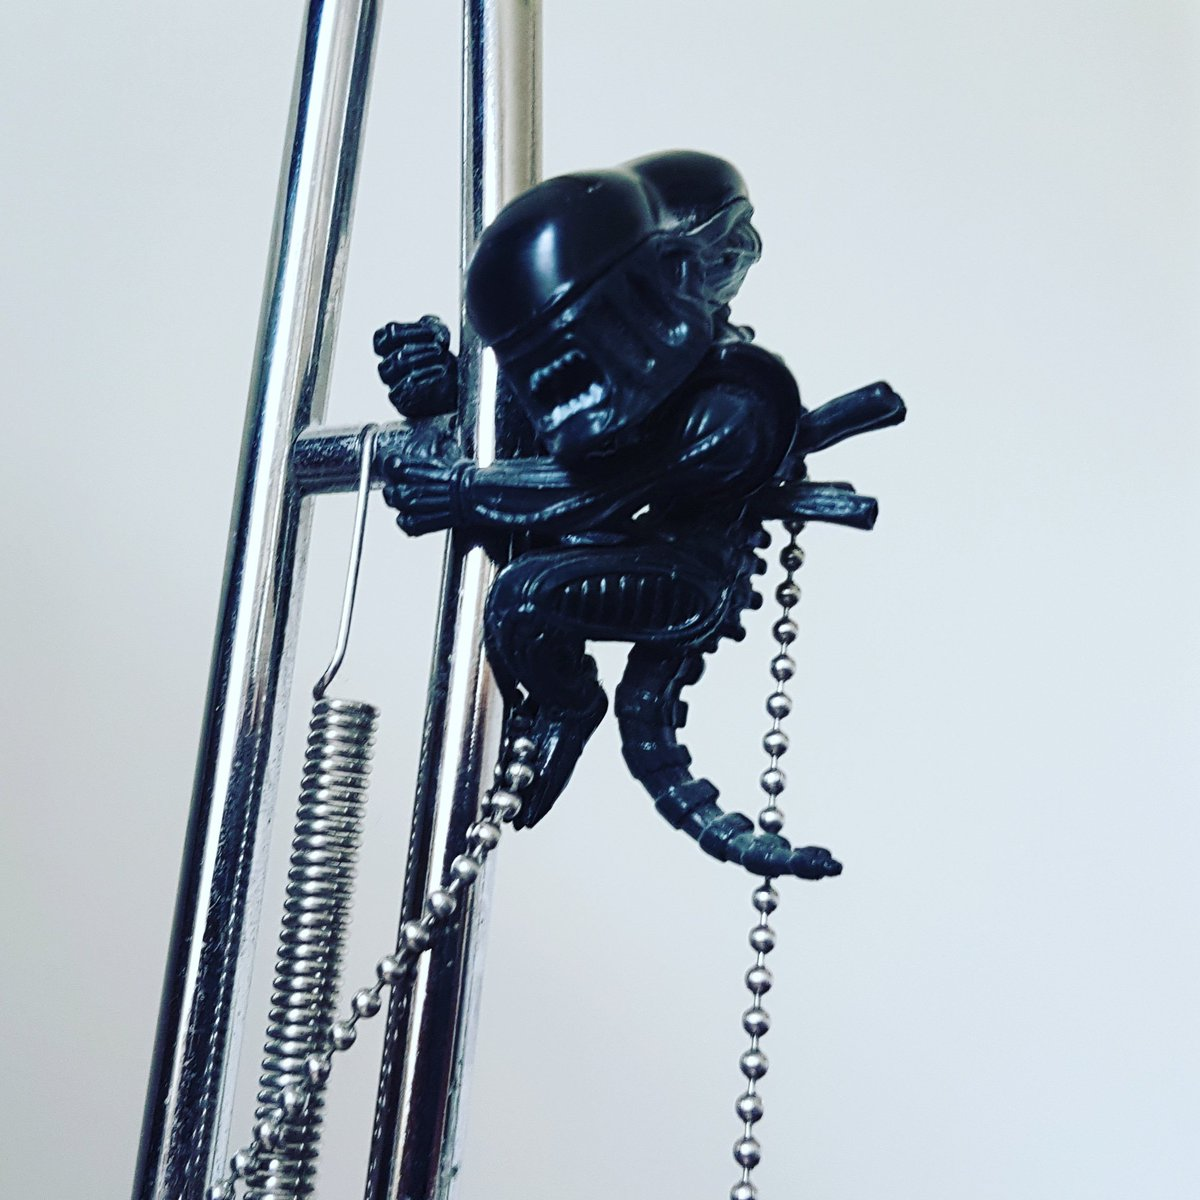 test Twitter Media - I tried buying a Xenomorph action figure for #AlienDay but couldn't find any. This li'l guy will have to do, though I might rewatch Alien & Aliens 😃 https://t.co/pujcHgaD7x